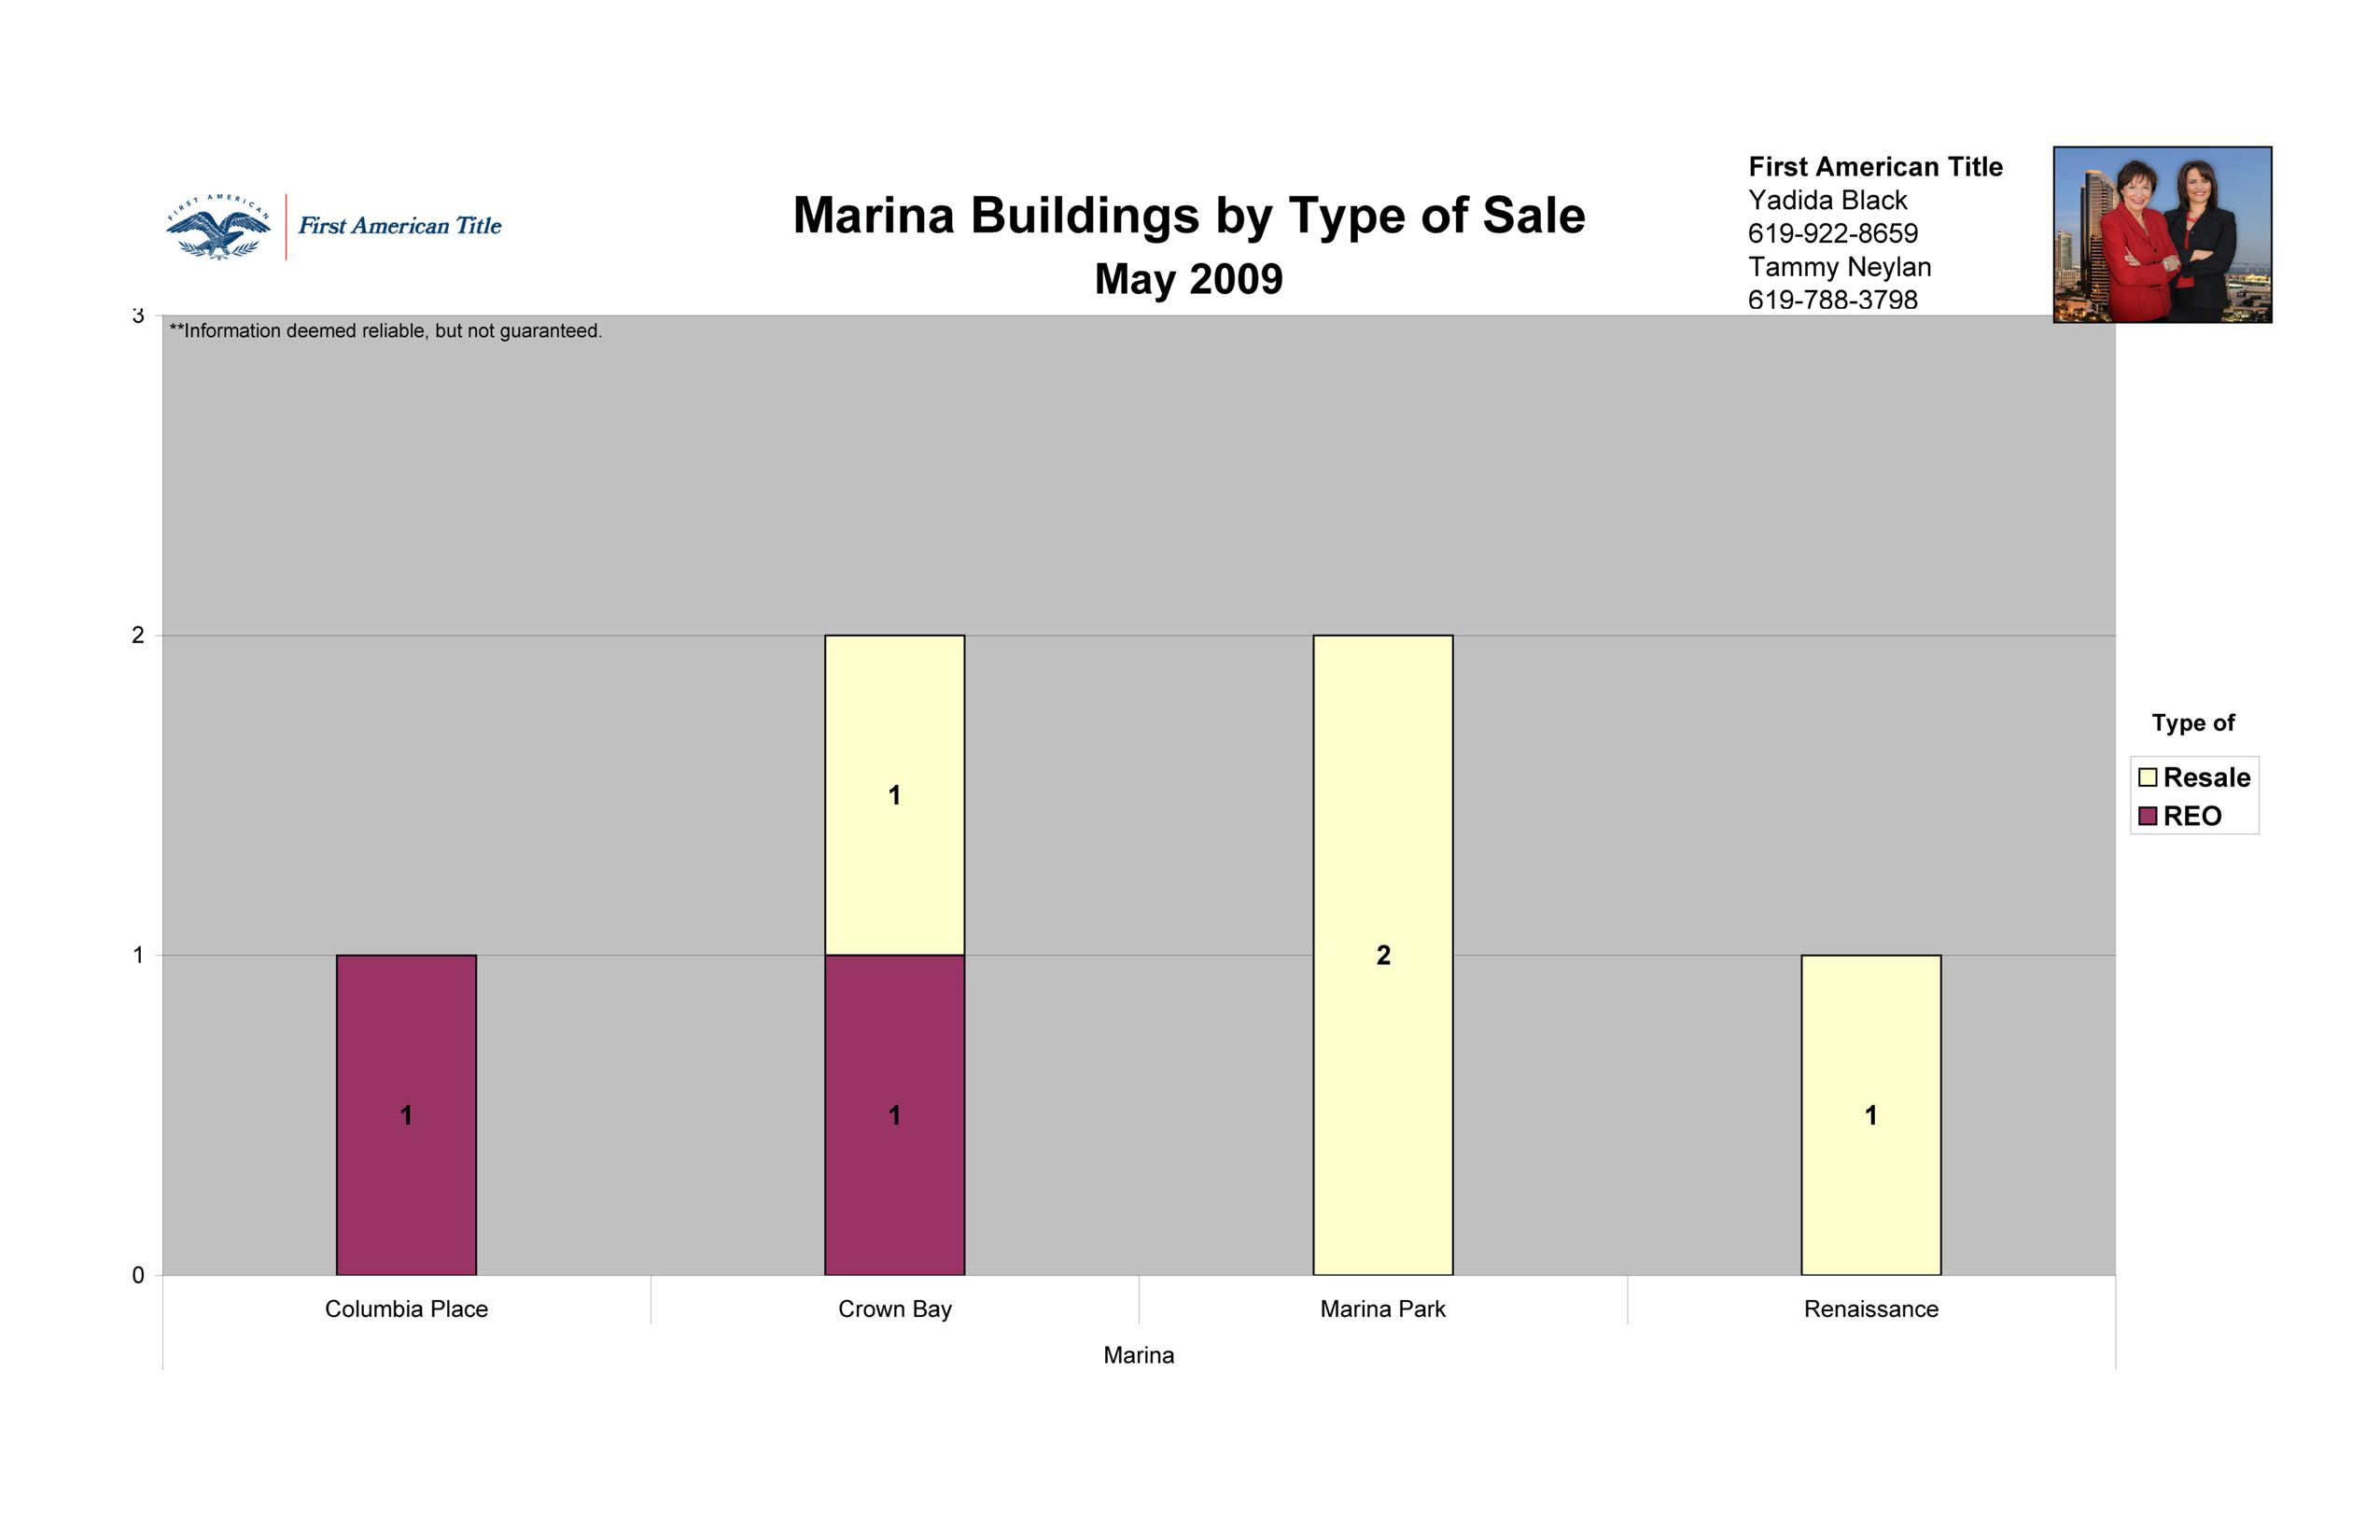 The Marina District in Downtown San Diego 92101 by Type of Sale